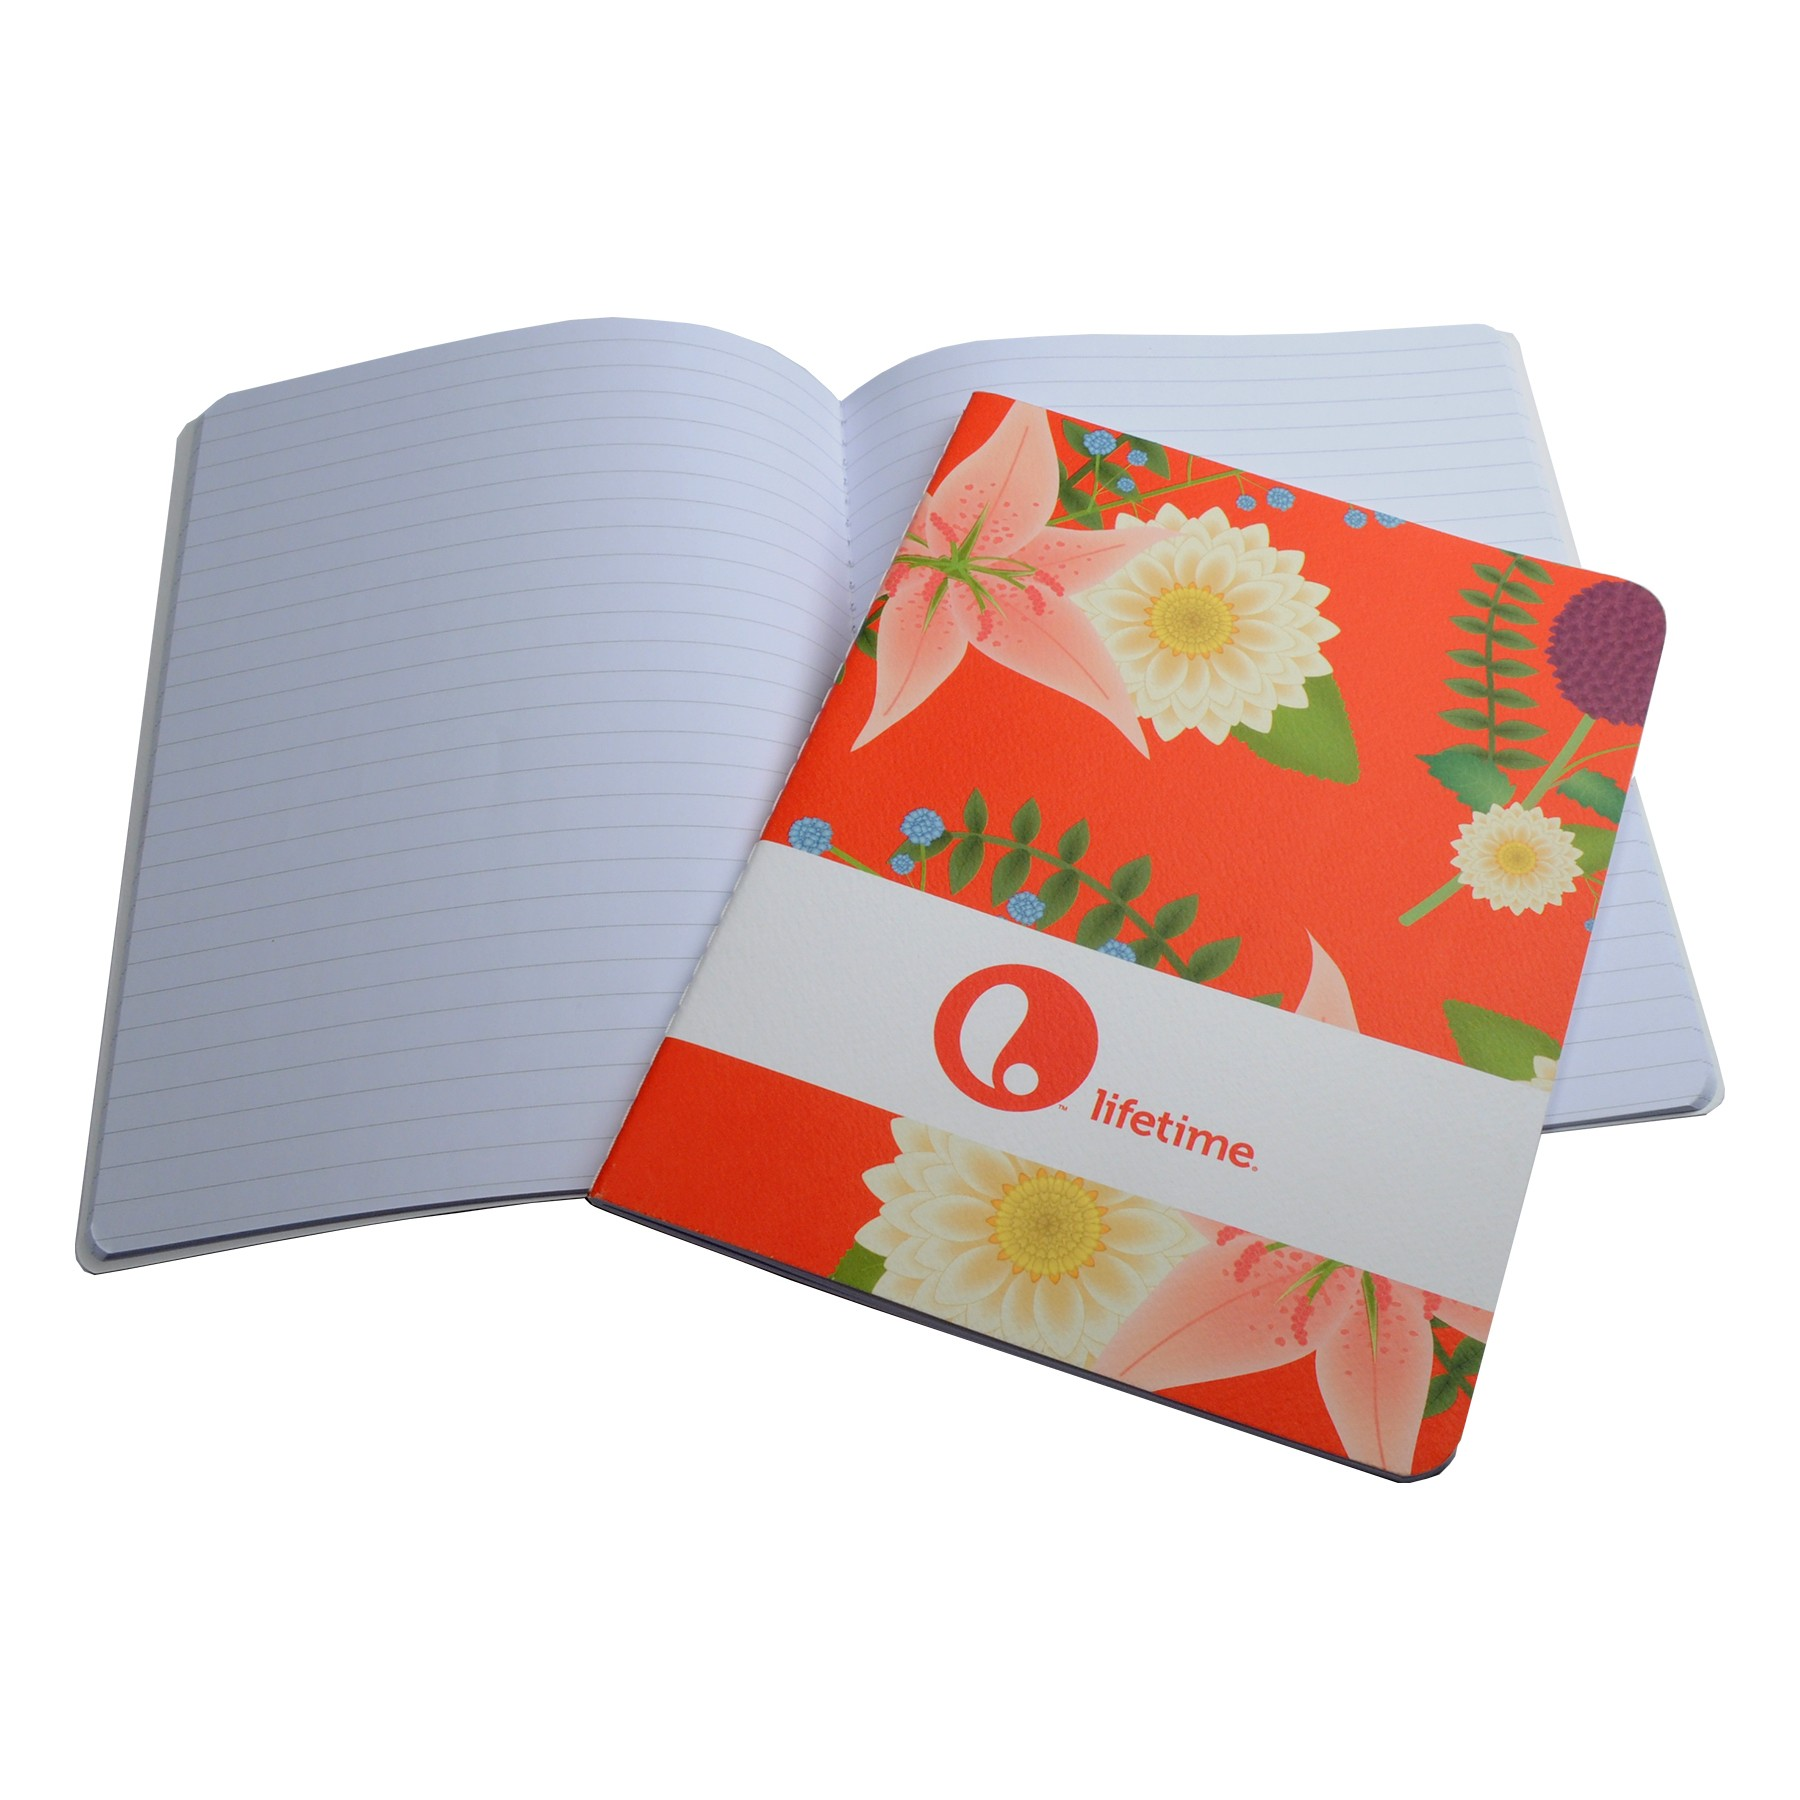 """7""""x9"""" Commuter Journal 56 Pages"""